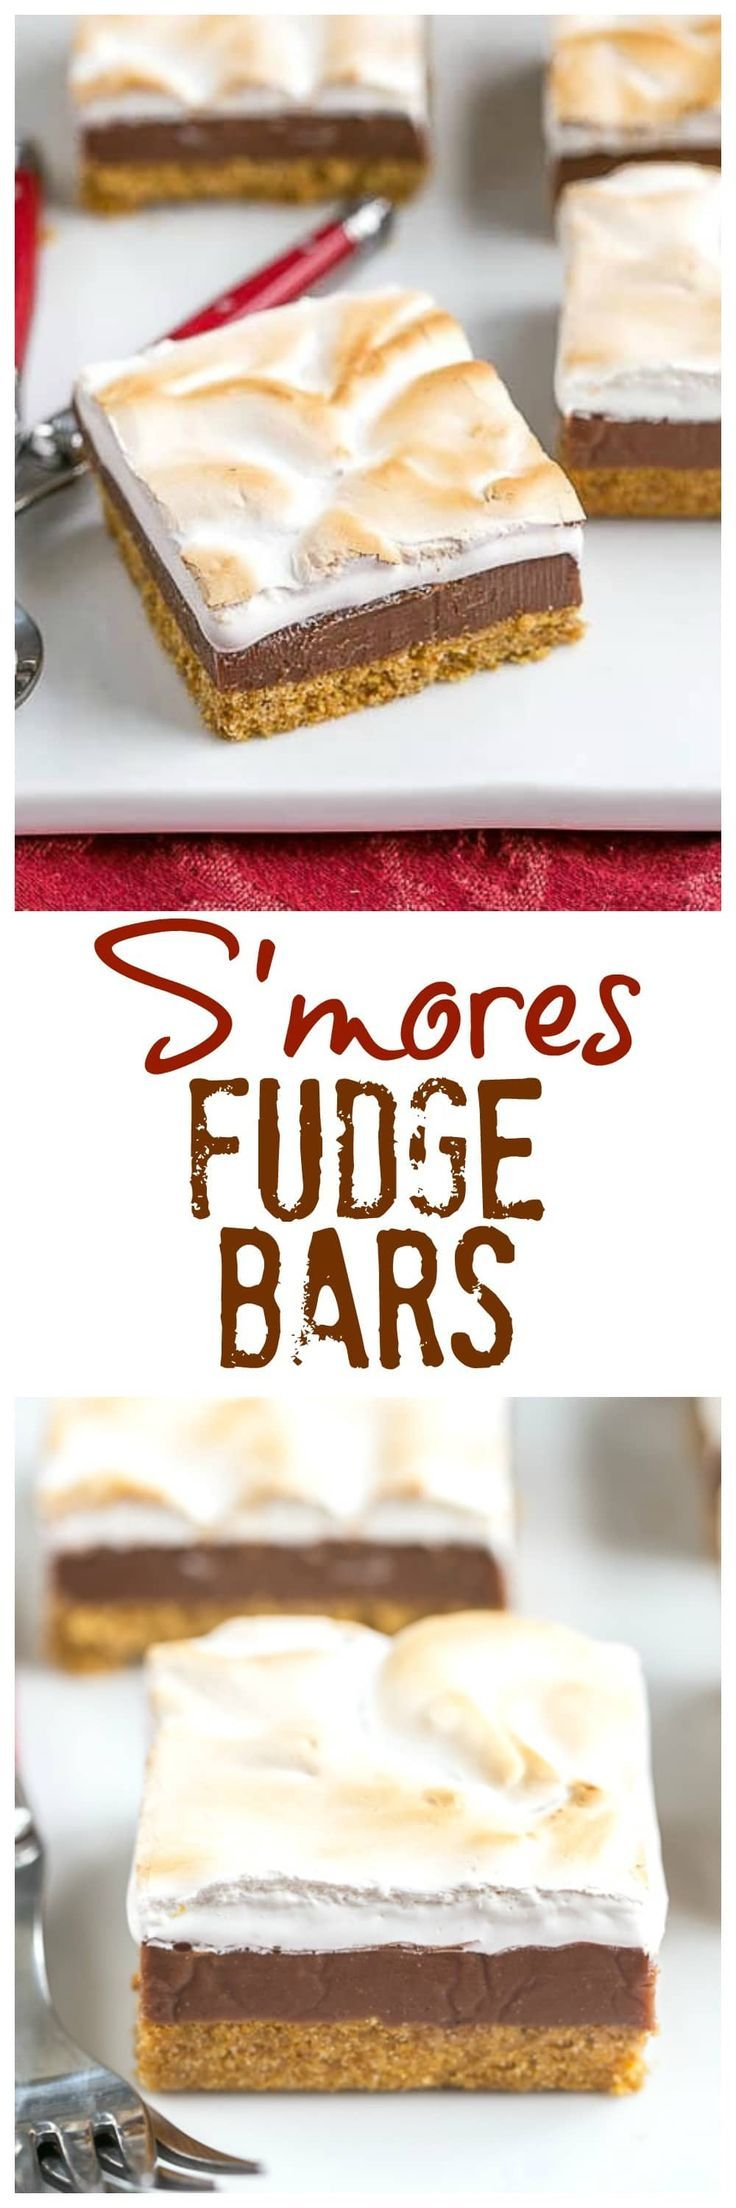 S'mores Fudge Bars | Graham cracker crust, fudgy center and marshmallow topping! @lizzydo